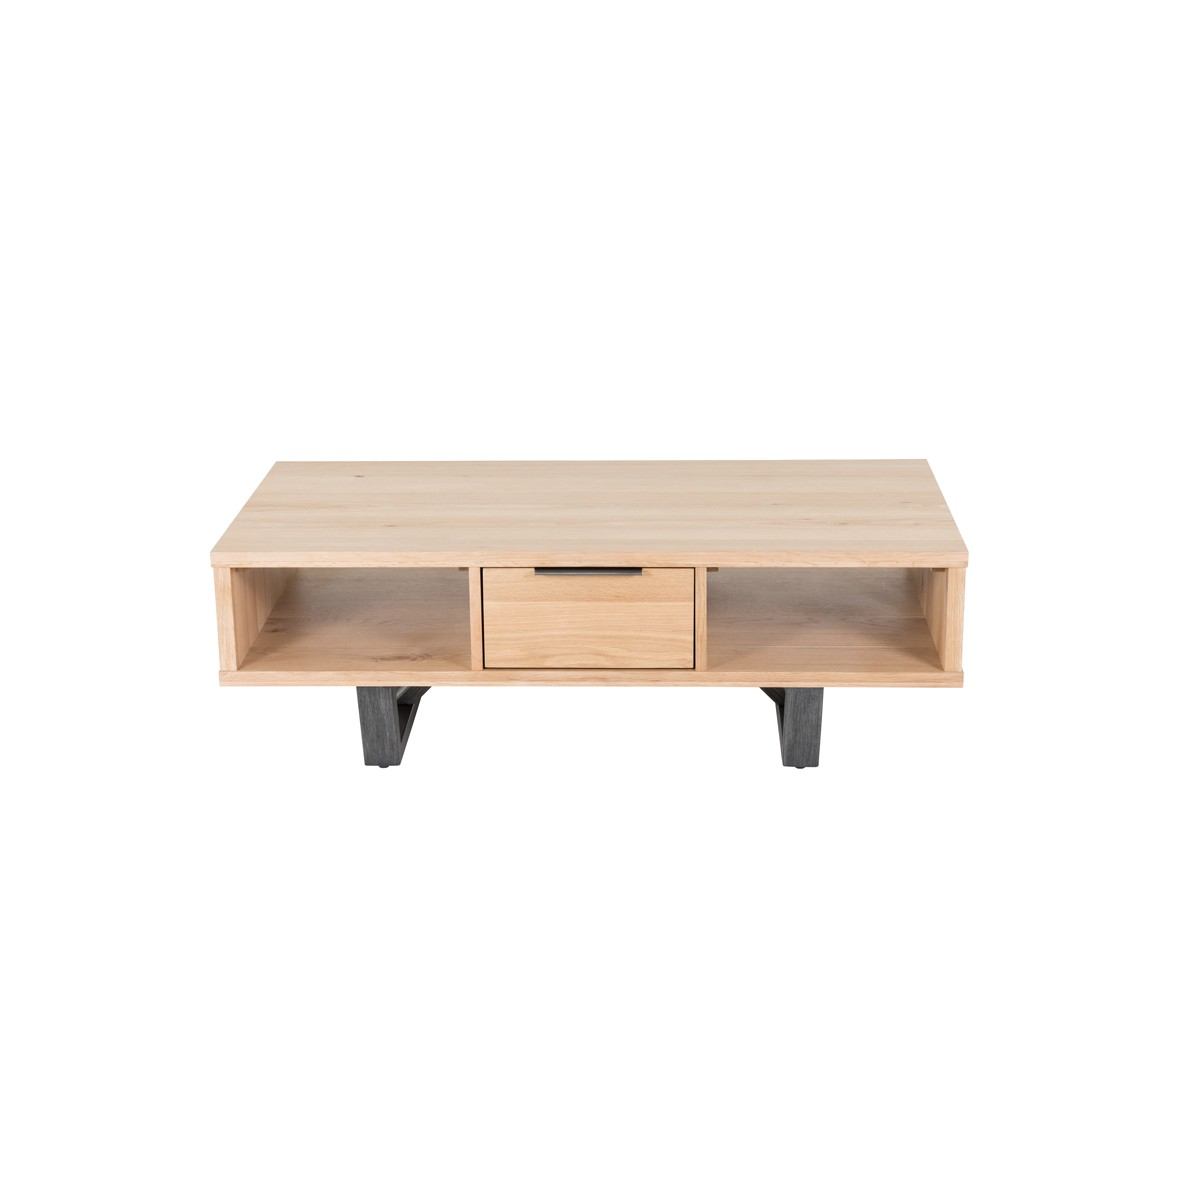 Table basse rectangulaire style contemporain 120 cm new - Table basse connectee ...